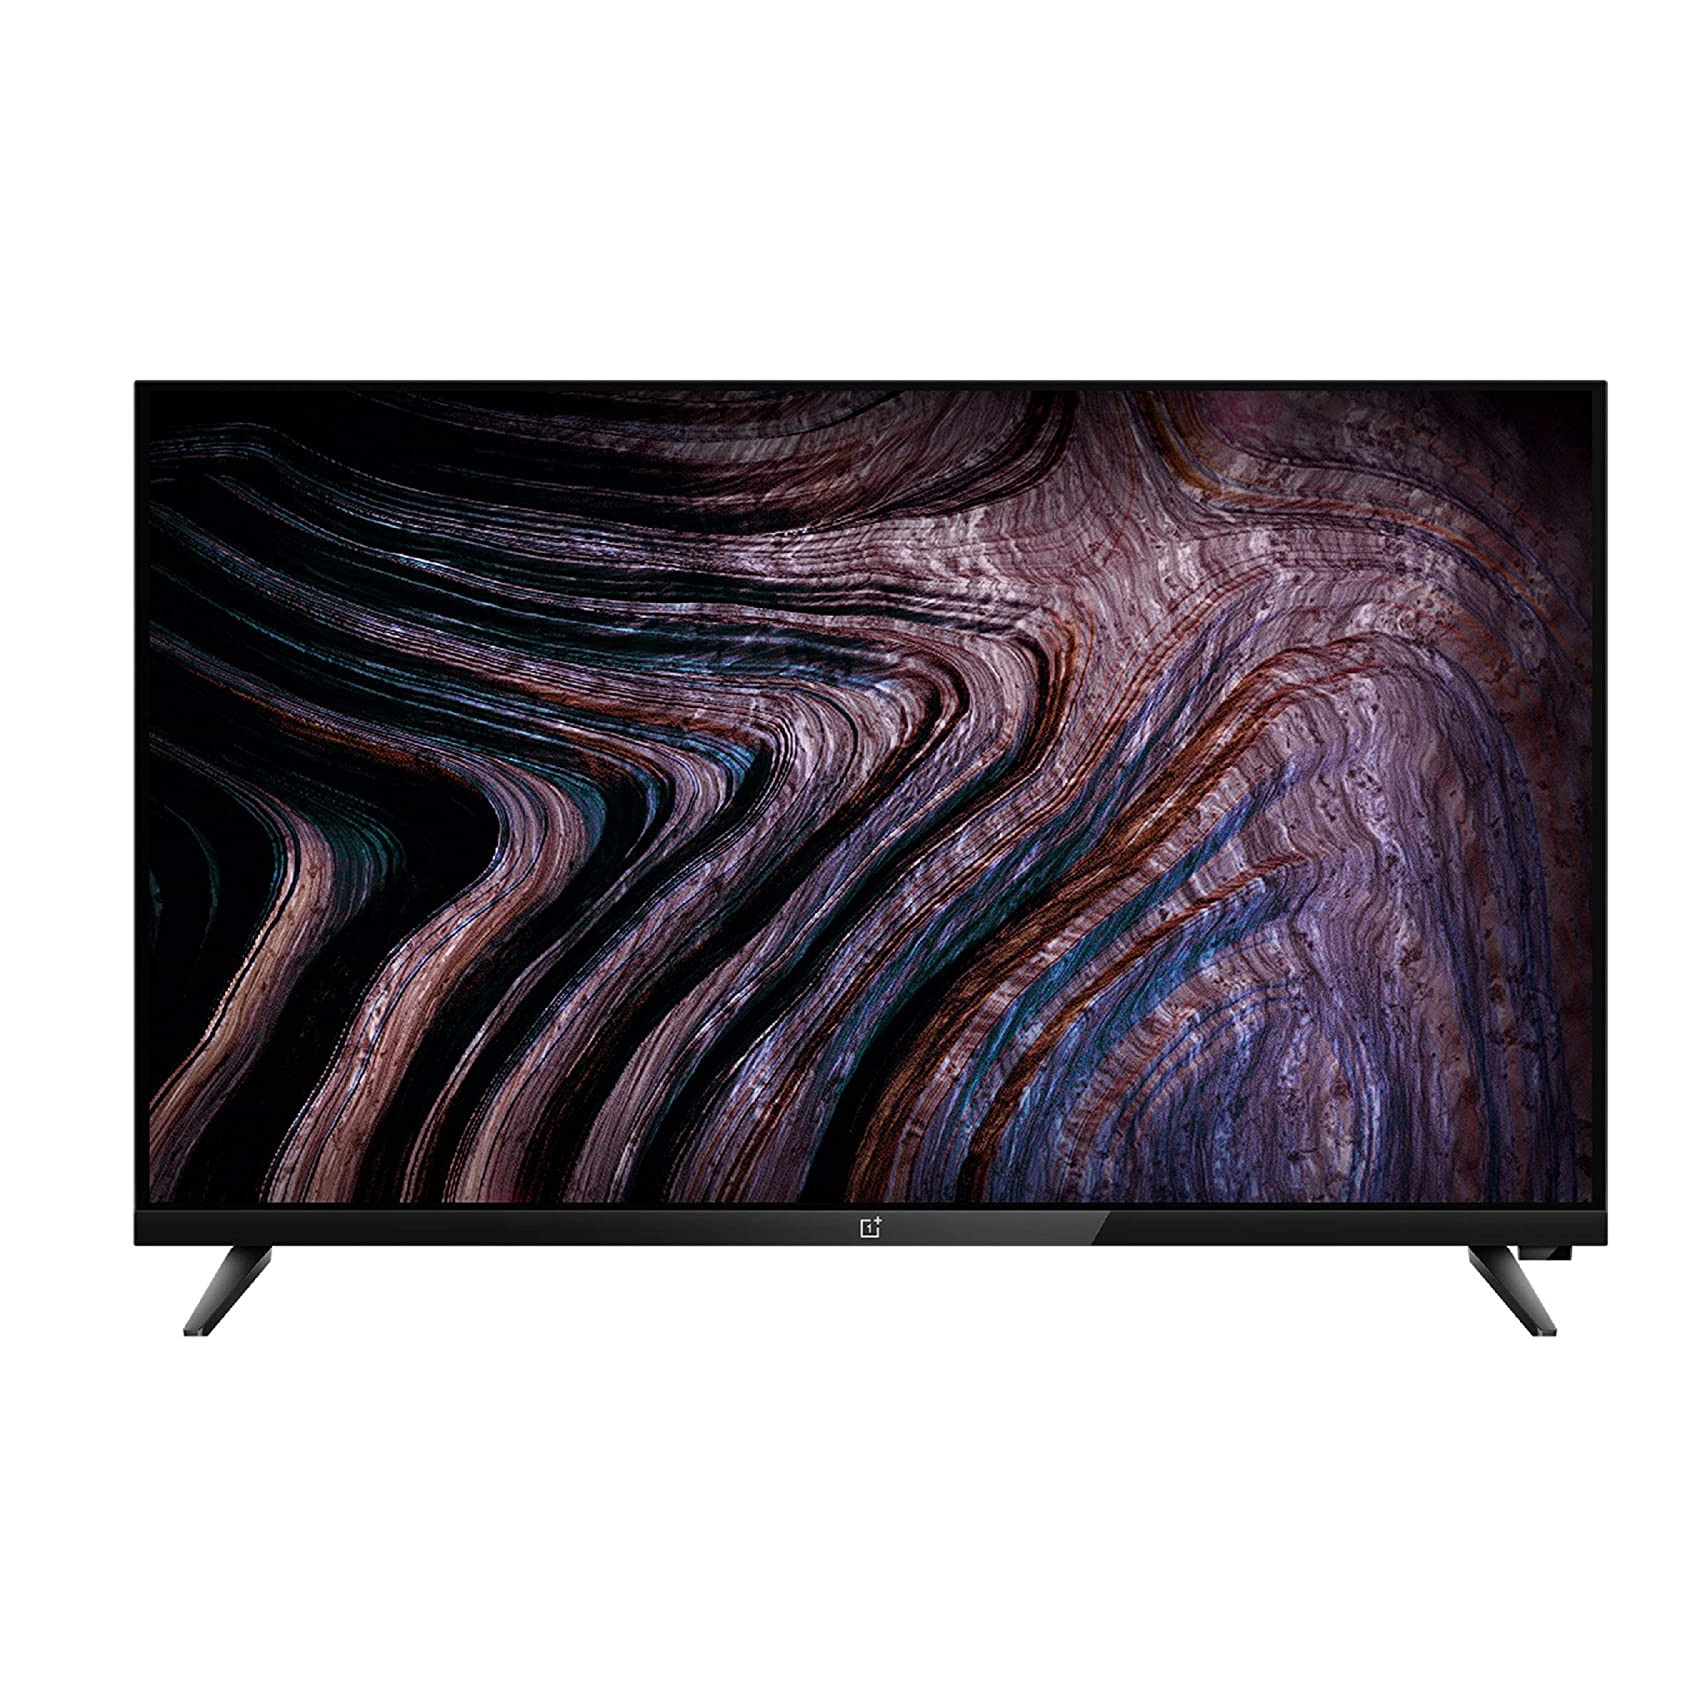 OnePlus 43Y1 43 Inch Full HD Smart Android LED Television